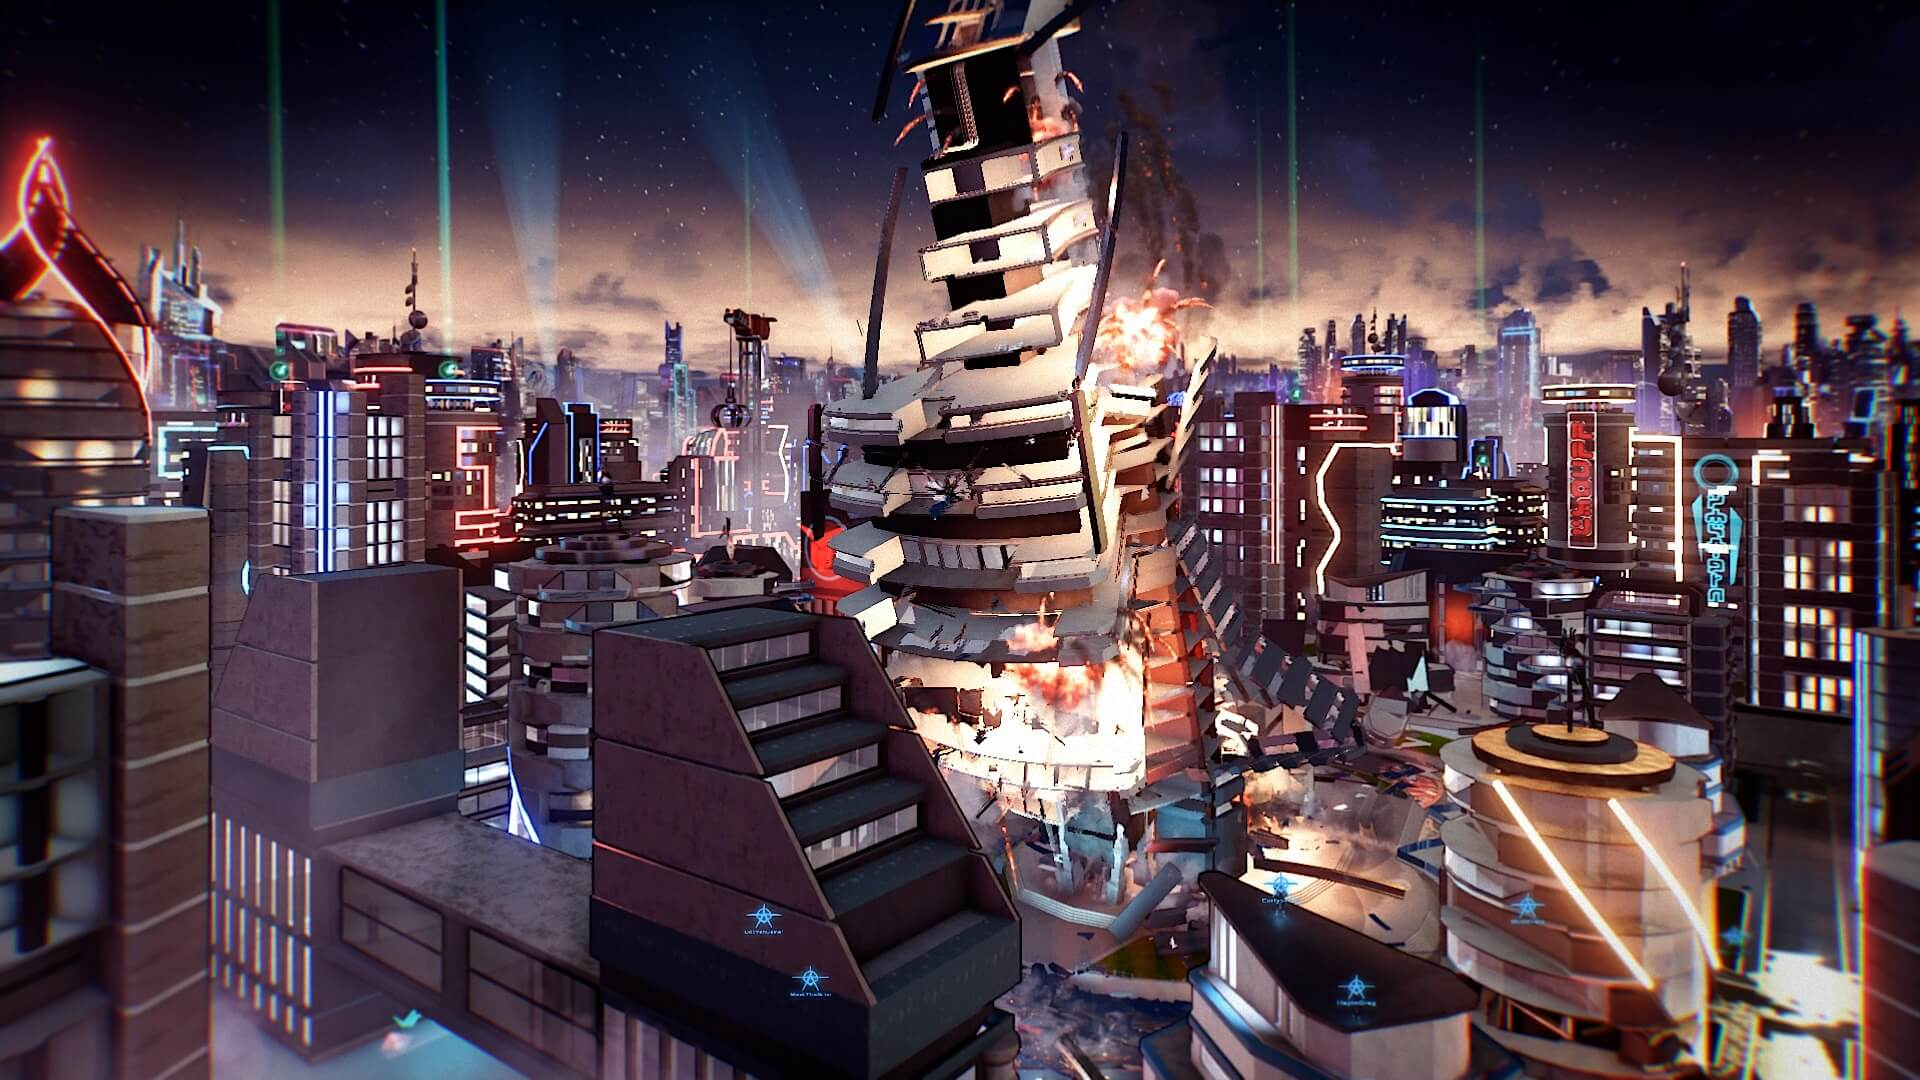 66c5b6a7070d Crackdown 3 has received its first major update since launch